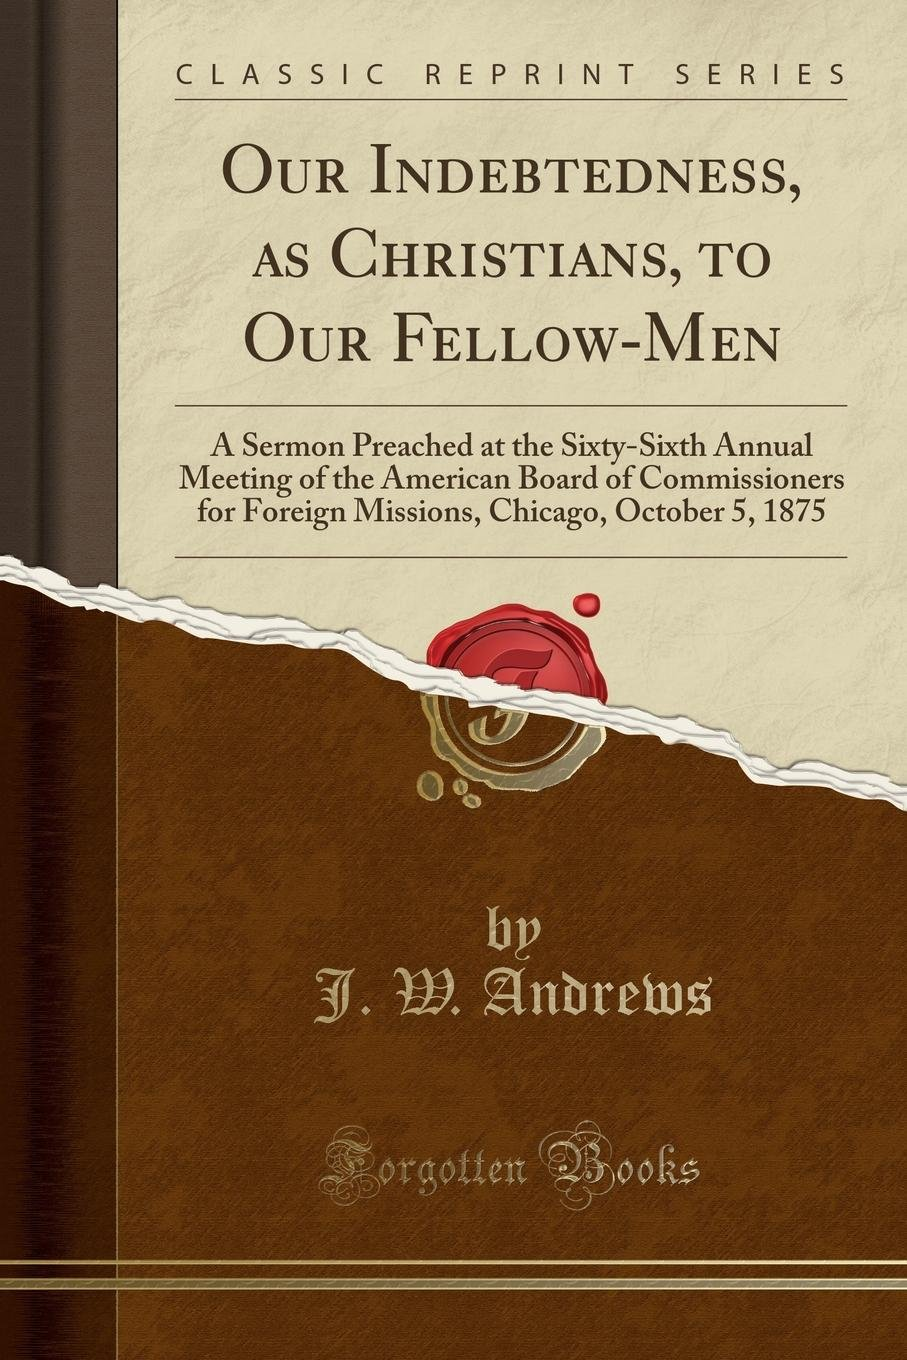 Read Online Our Indebtedness, as Christians, to Our Fellow-Men: A Sermon Preached at the Sixty-Sixth Annual Meeting of the American Board of Commissioners for ... Chicago, October 5, 1875 (Classic Reprint) pdf